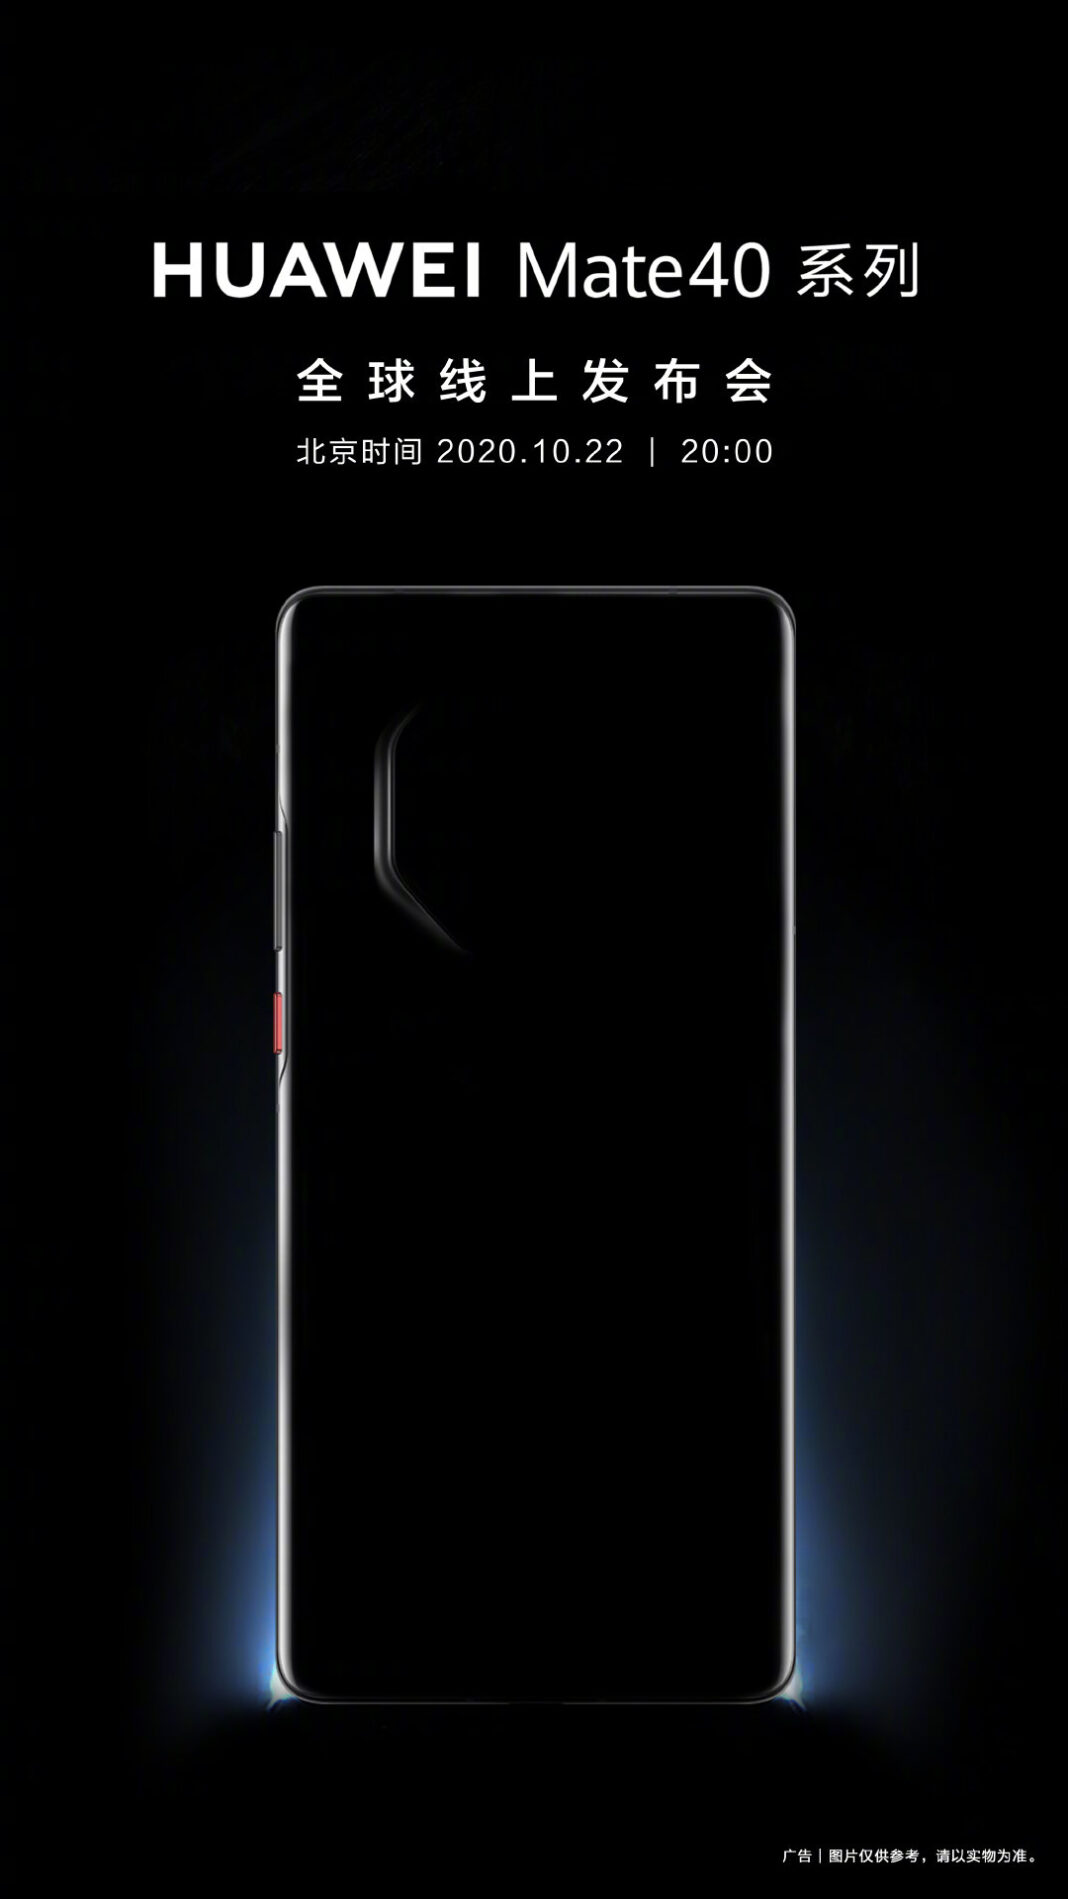 Huawei-Mate-40-rear-design-1068x1899